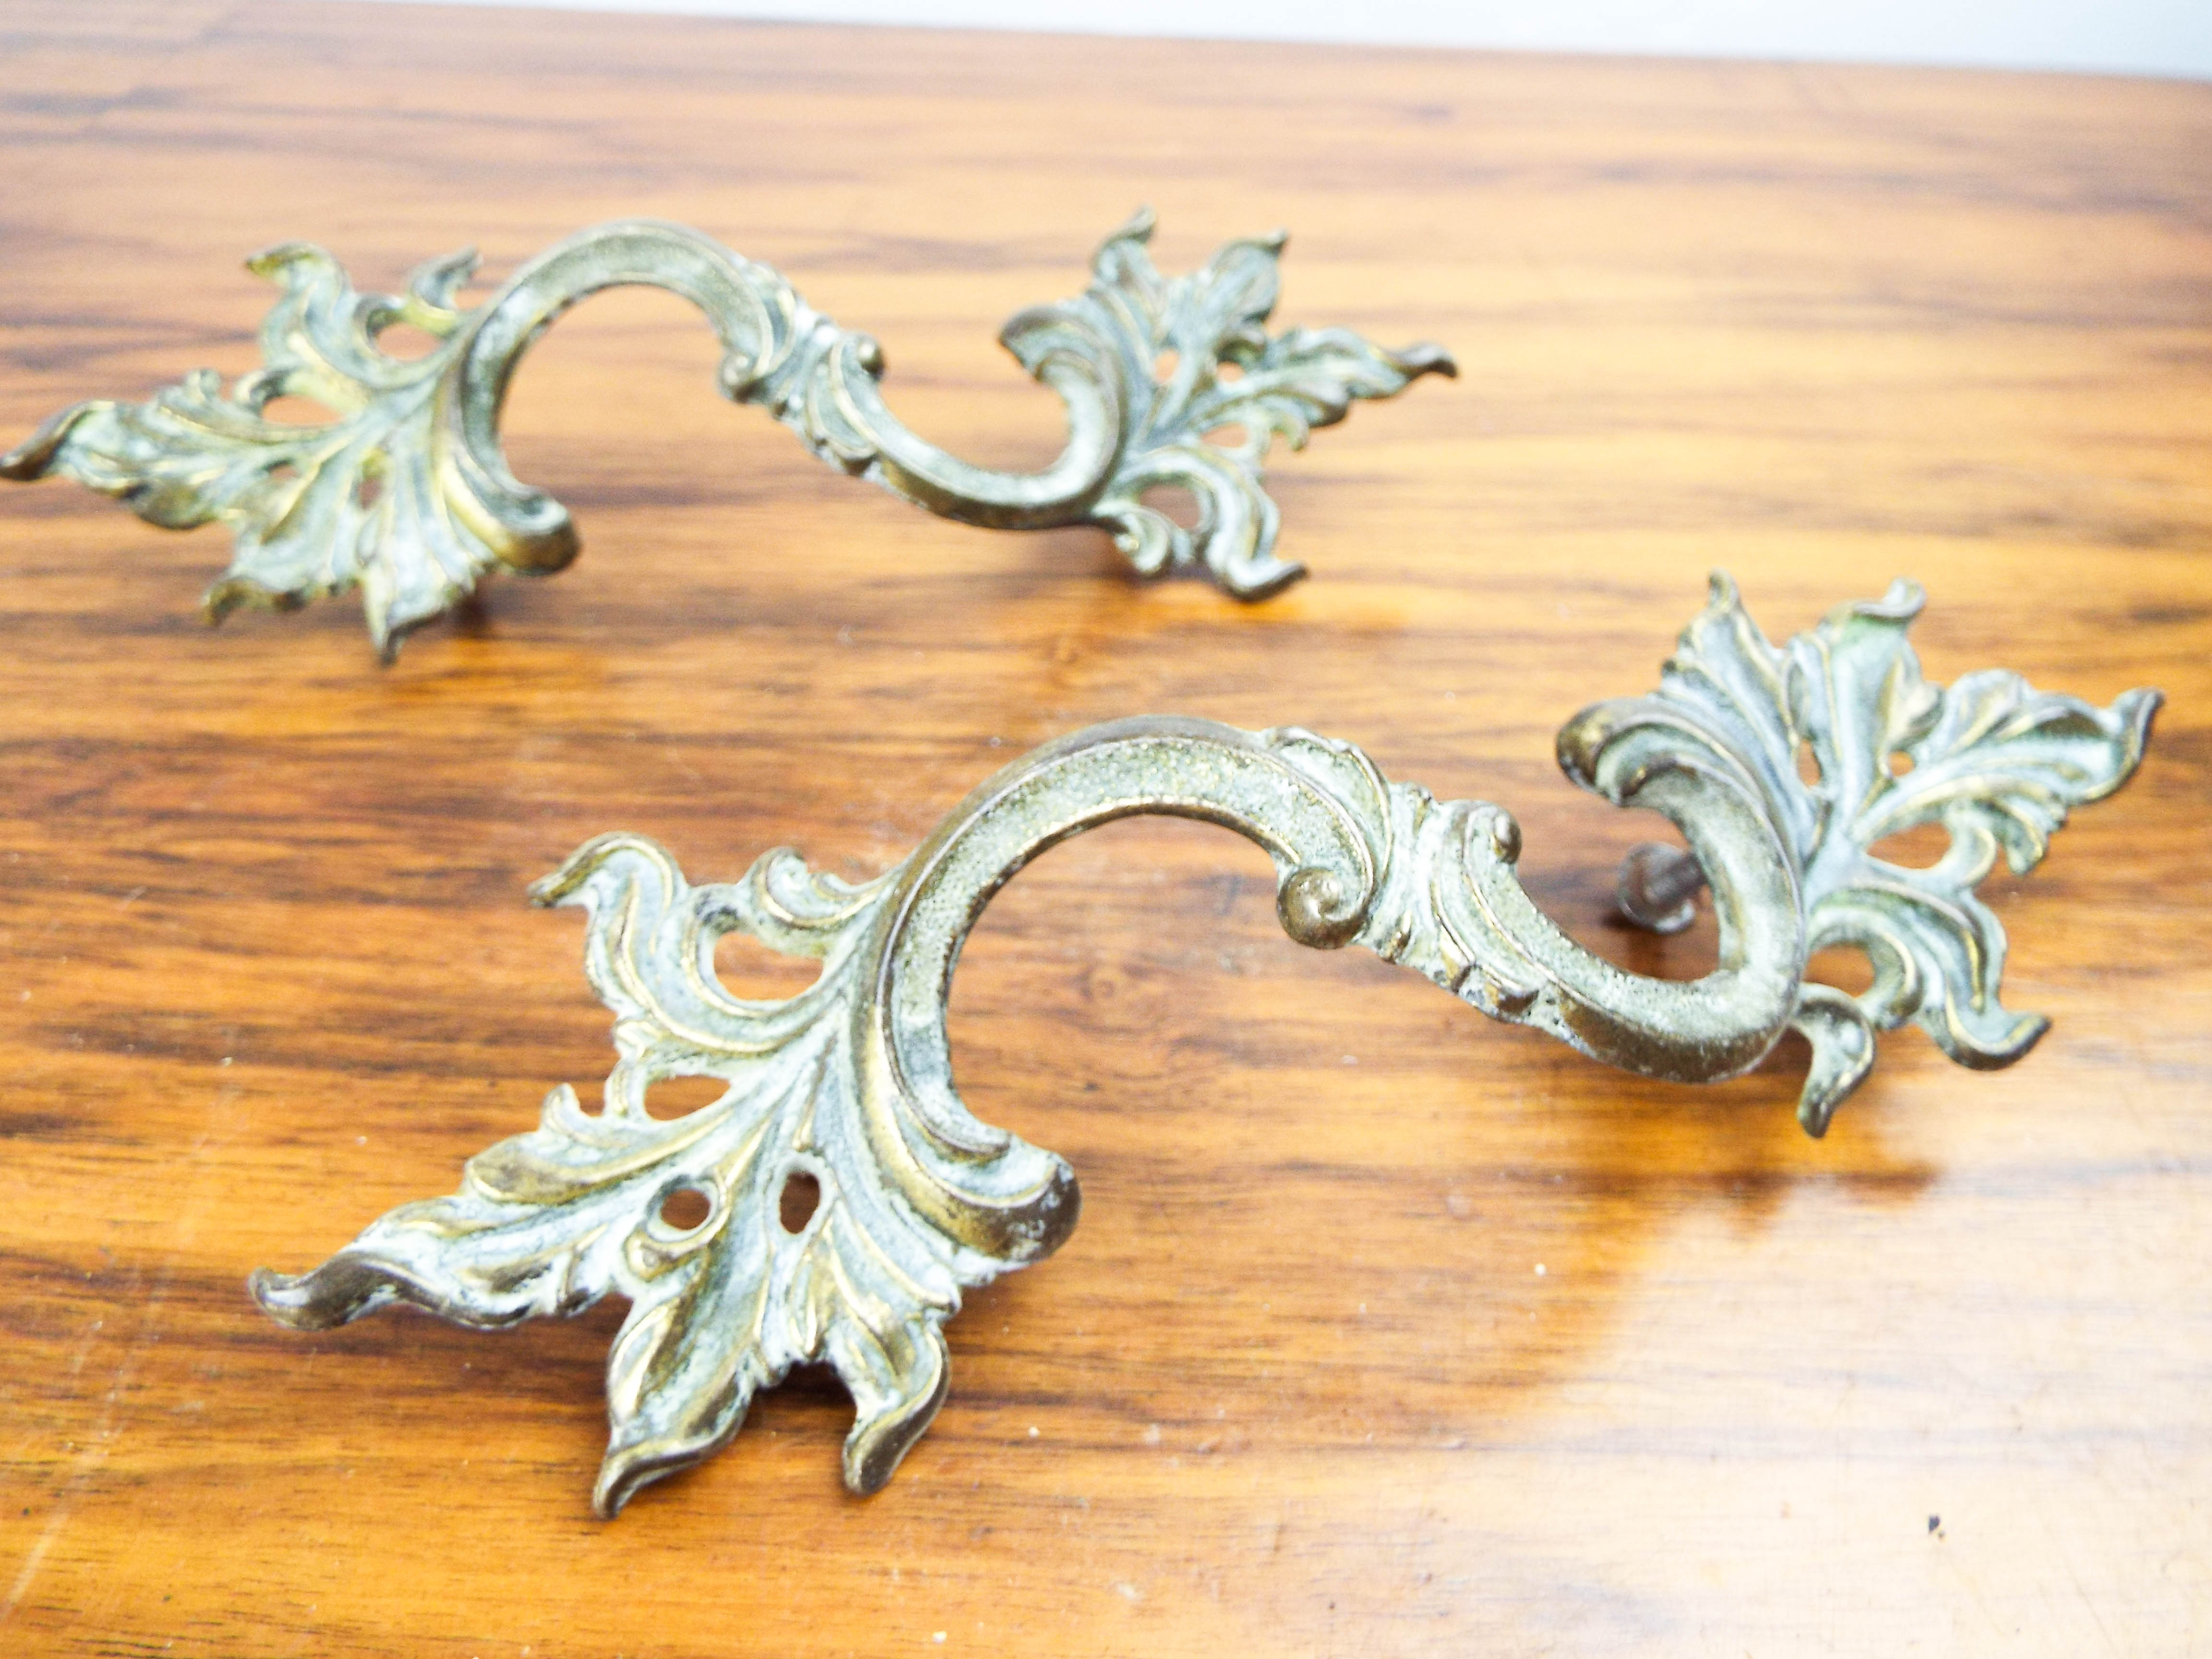 Tremendous French Metal Art Nouveau Brass Drawer Pull Cabinet Handle Decorative Hardware Ebay Home Interior And Landscaping Ymoonbapapsignezvosmurscom